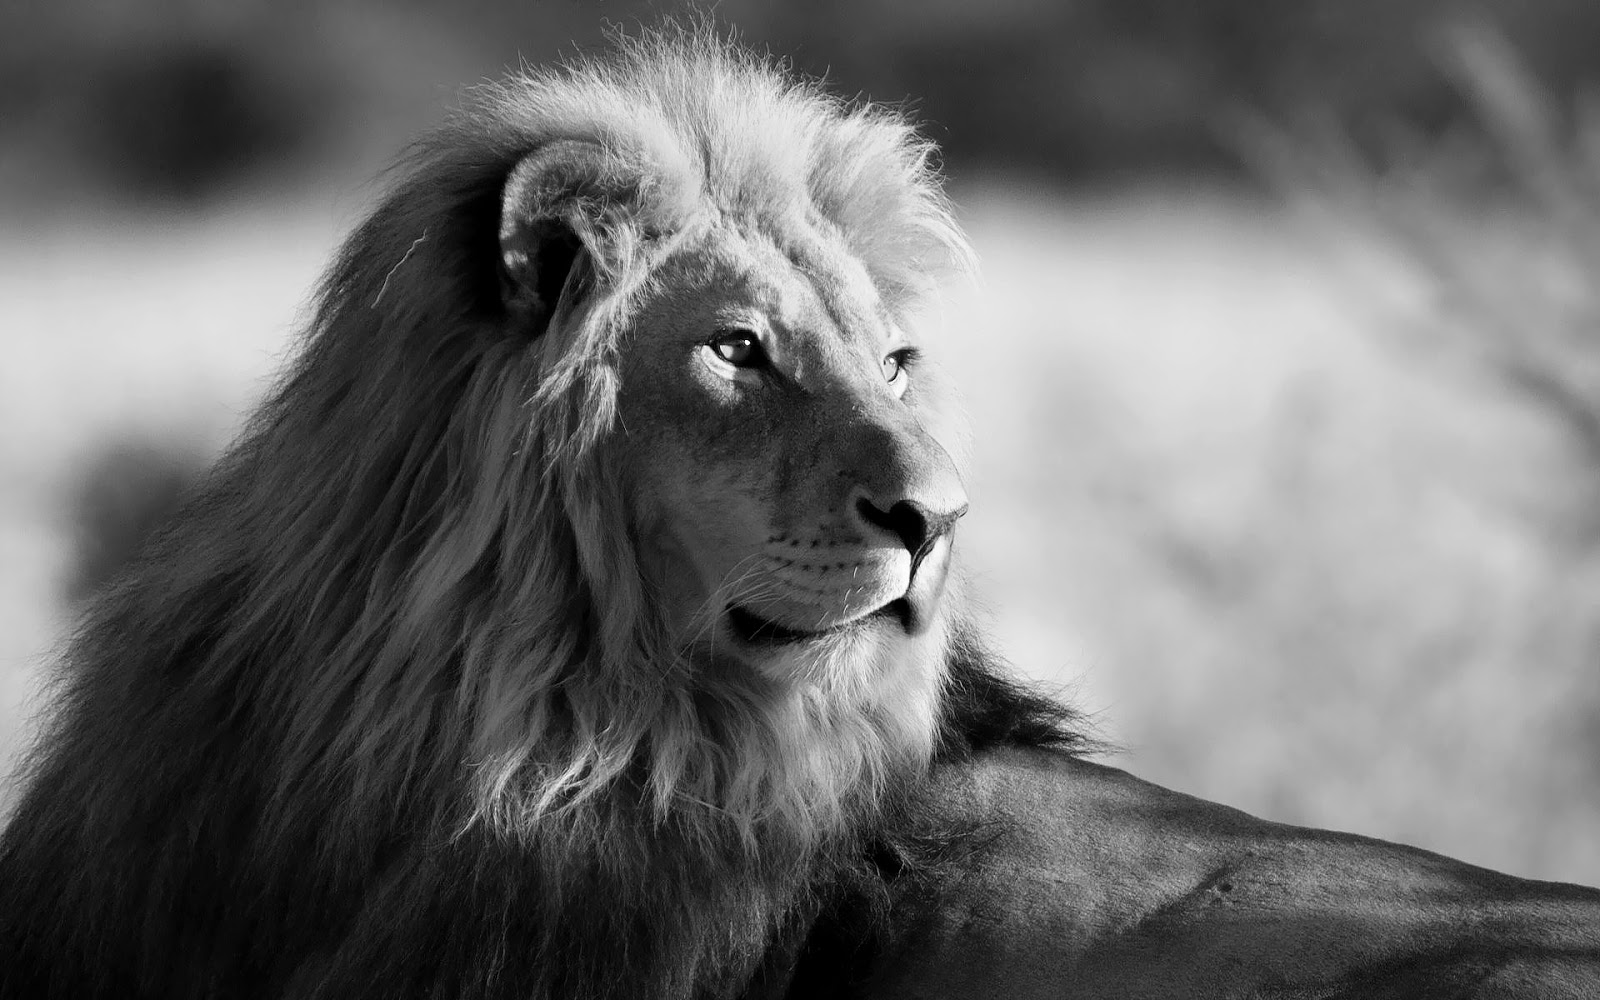 Free Download Black And White Wallpaper With Lion Hd Animals Wallpapers 1600x1000 For Your Desktop Mobile Tablet Explore 43 Black And White Lion Wallpaper White Lion Wallpaper Desktop Beautiful